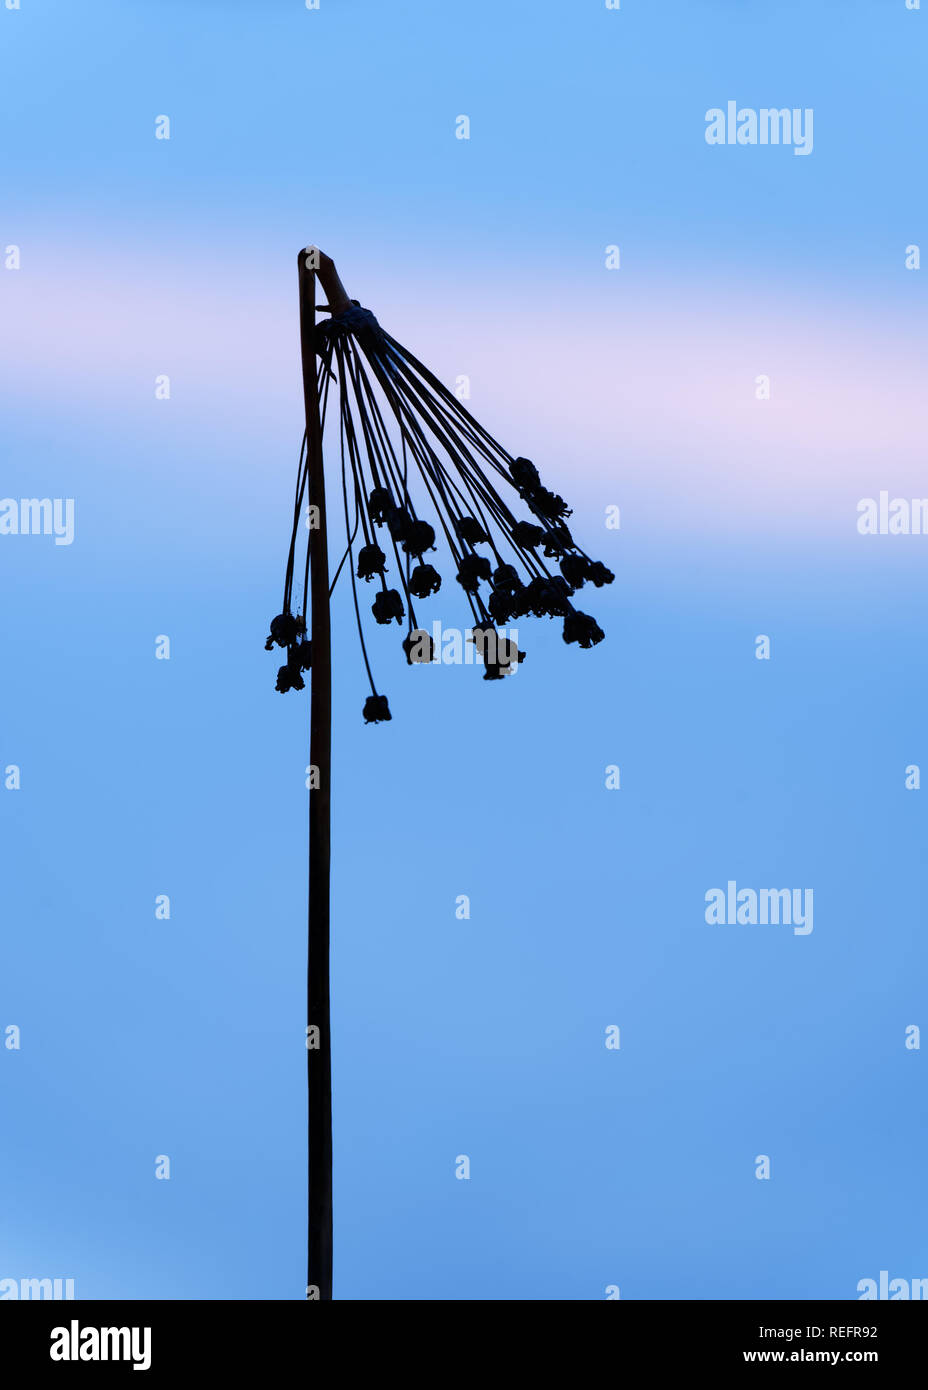 Silhouette of a kinked panicle in narrow sharpness zone in the evening light at the blue hour, detail view, close-up - Location: Germany, Oderbruch - Stock Image